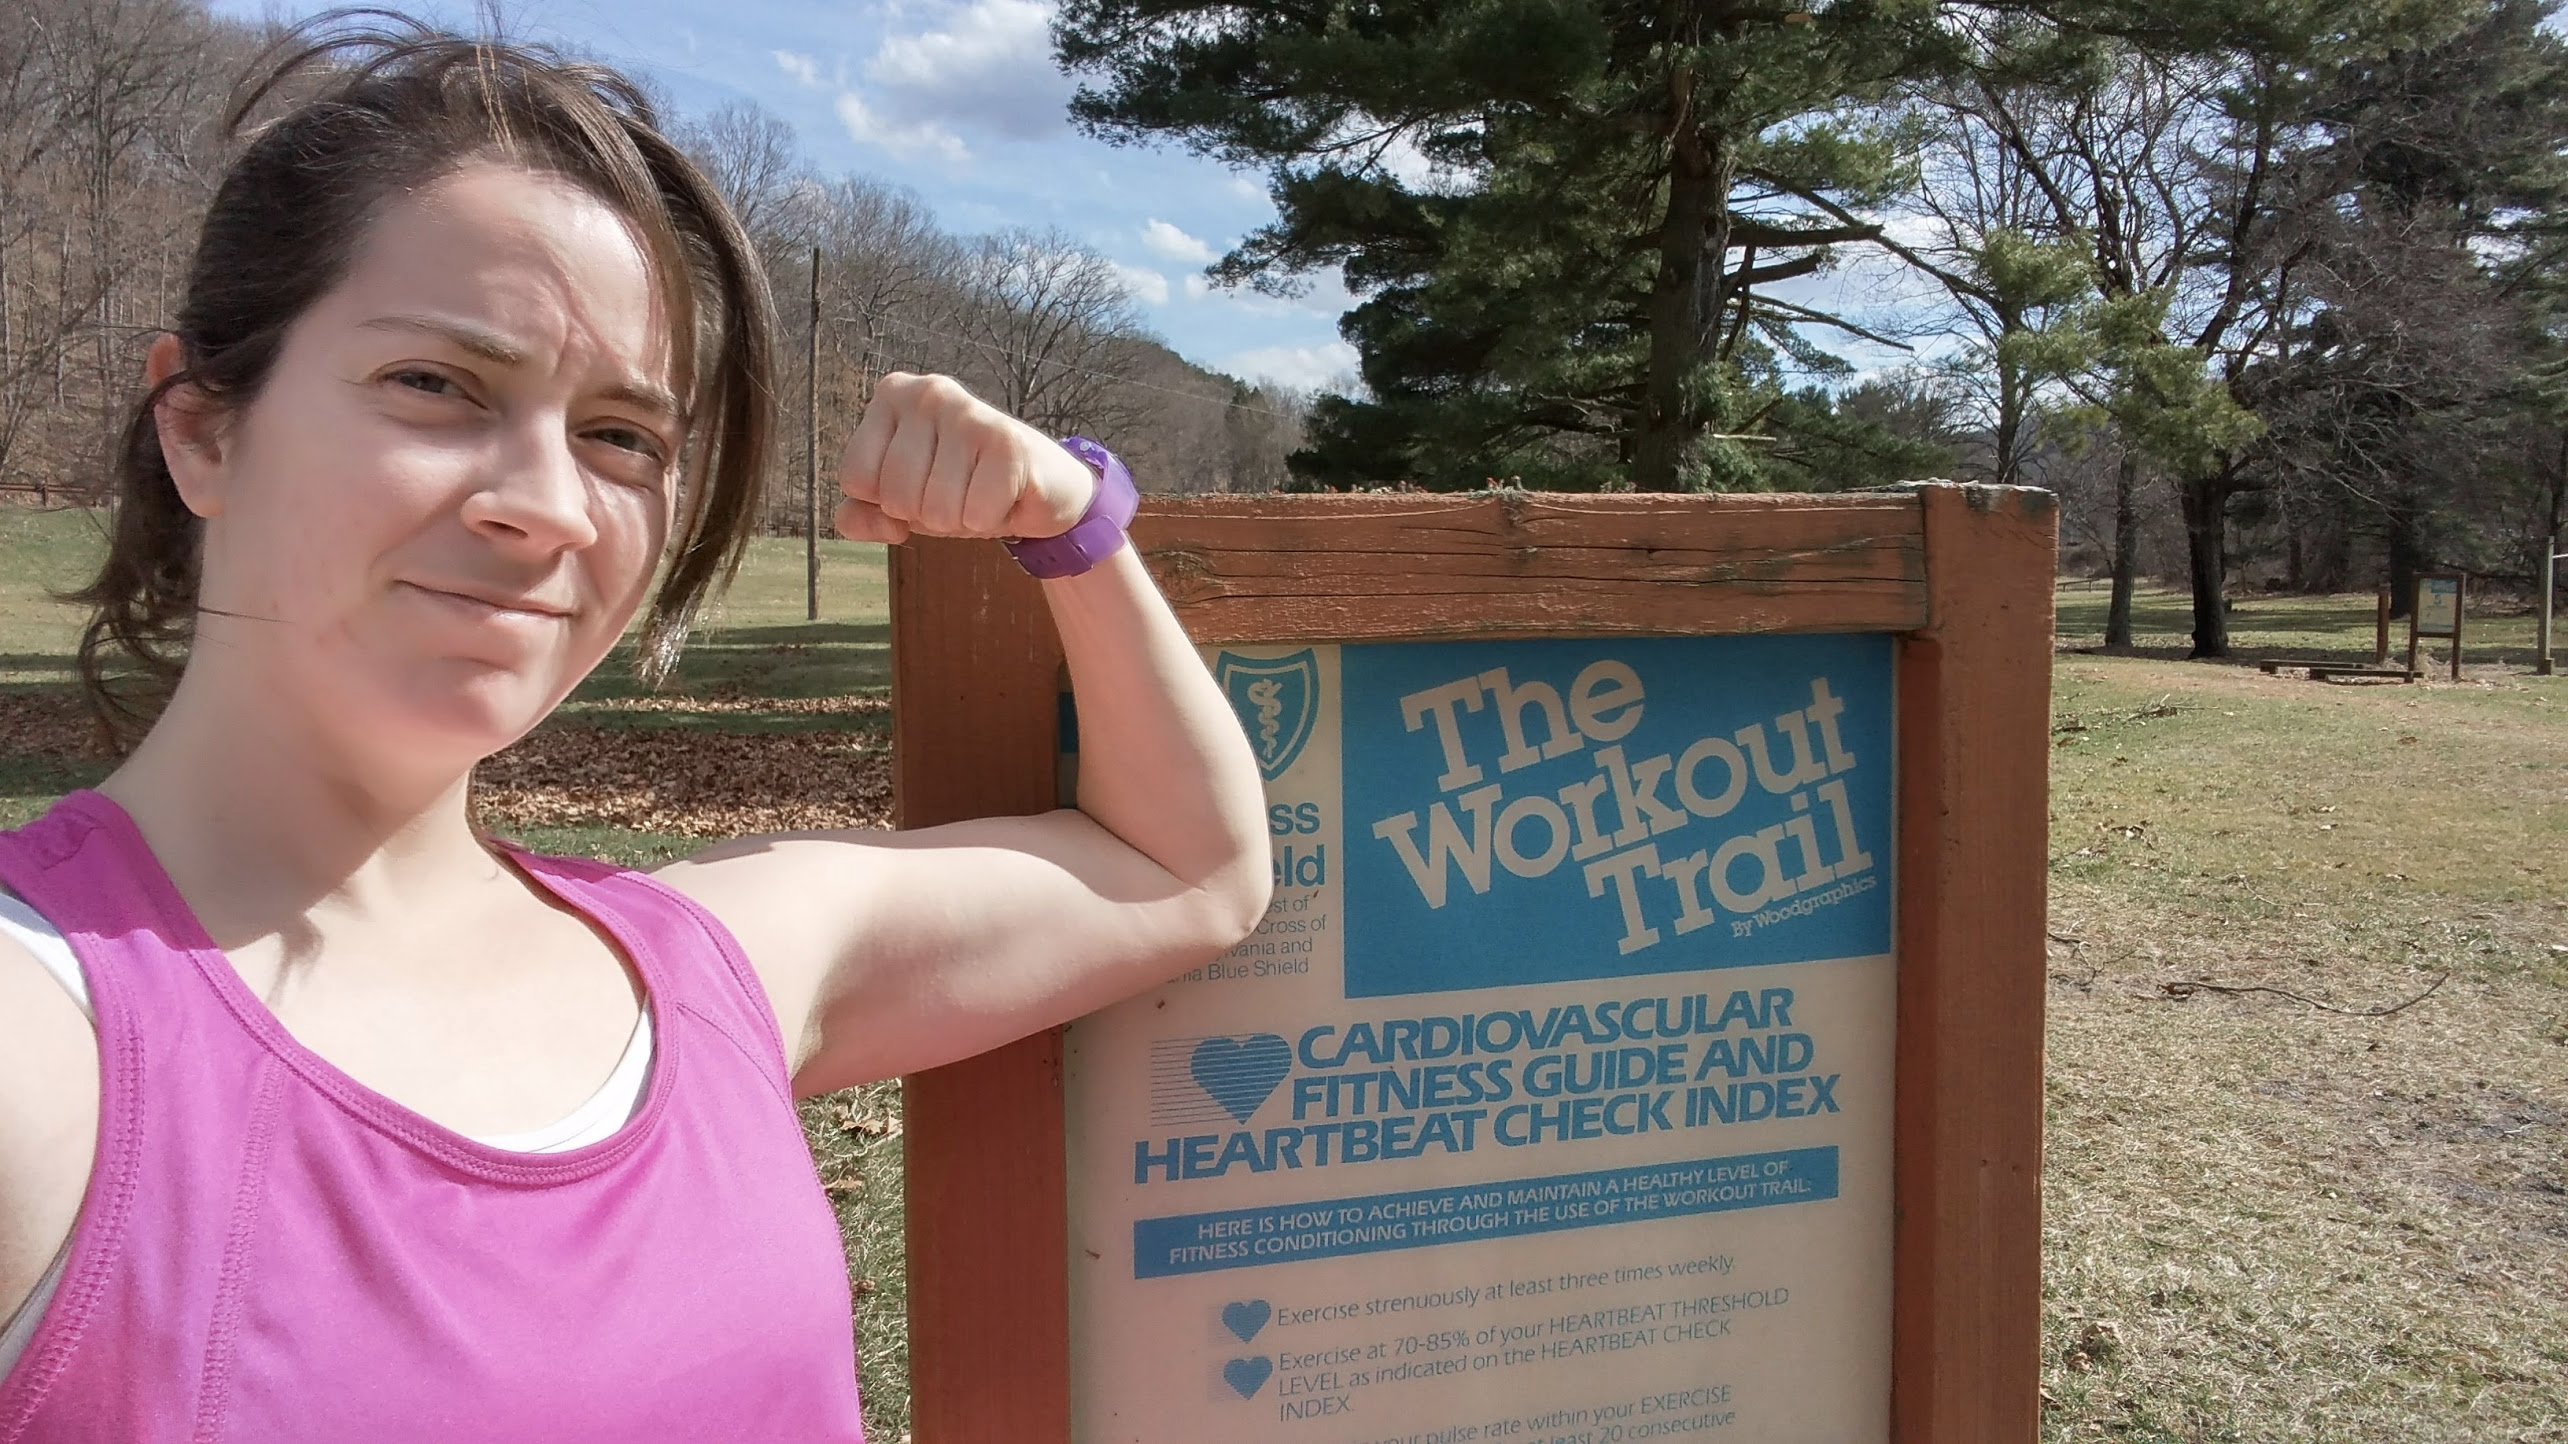 Find A Fitness Trail And Exercise Like It's 1992